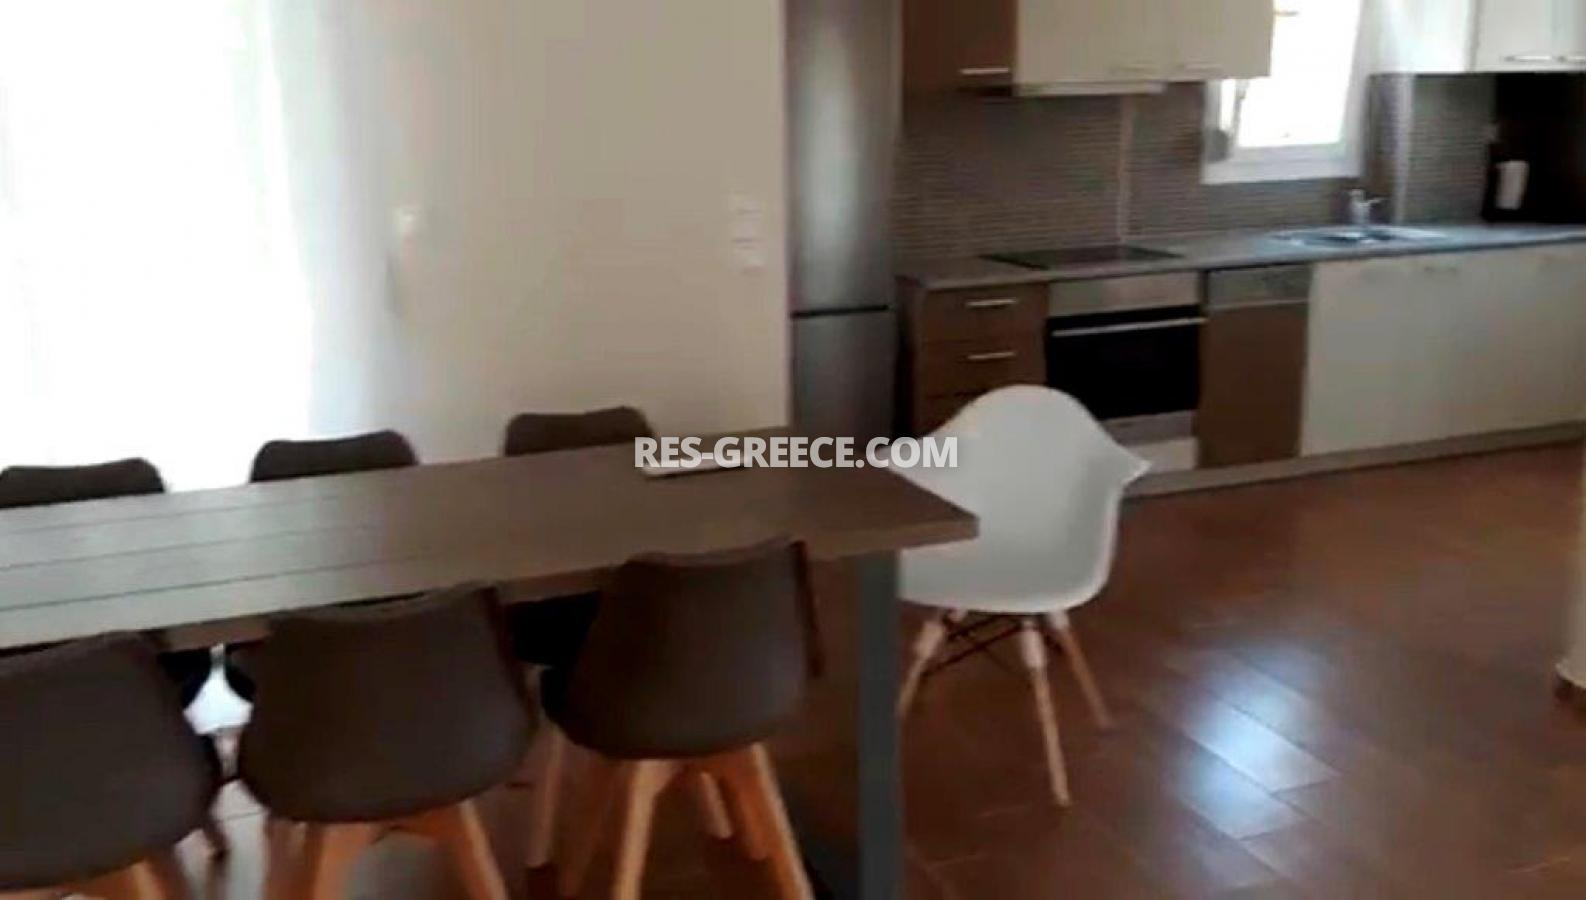 Palia Agora, Northern Aegean Islands, Greece - new house for sale in the heart of Thassos town - Photo 4